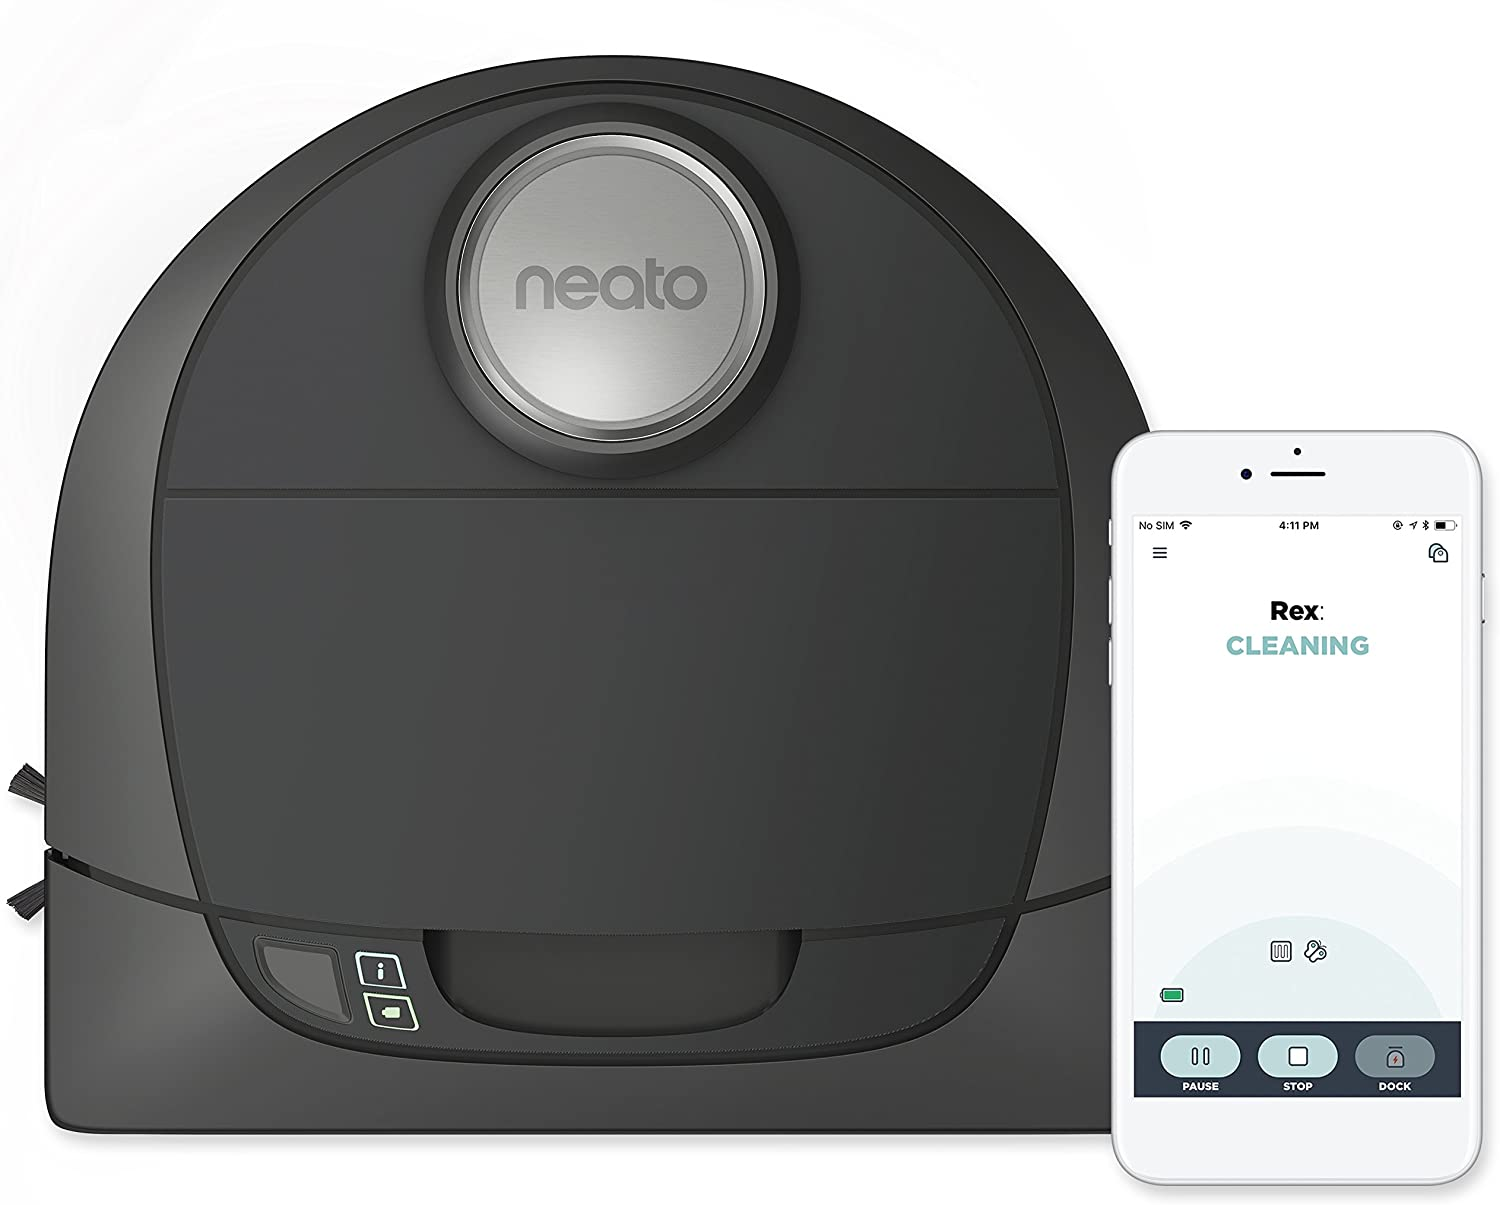 Neato Botvac D5 Connected Laser Guided Robot Vacuum, Pet & Allergy, Works with Smartphones, Alexa, Smartwatches